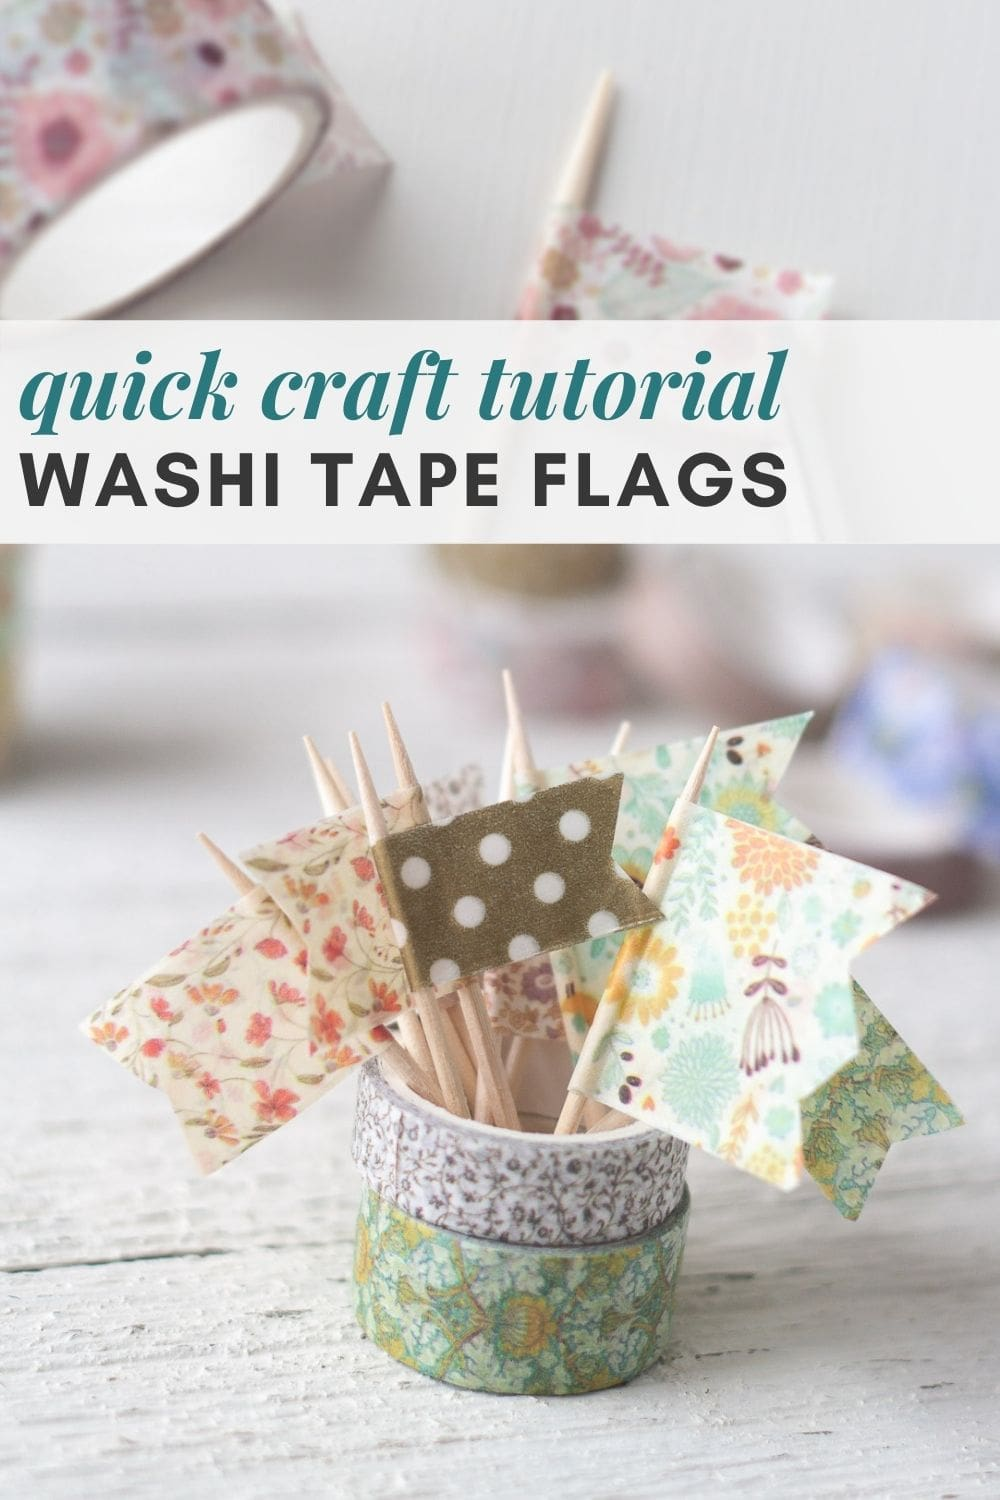 Washi tape flags made with toothpicks displayed in rolls of washi tape.